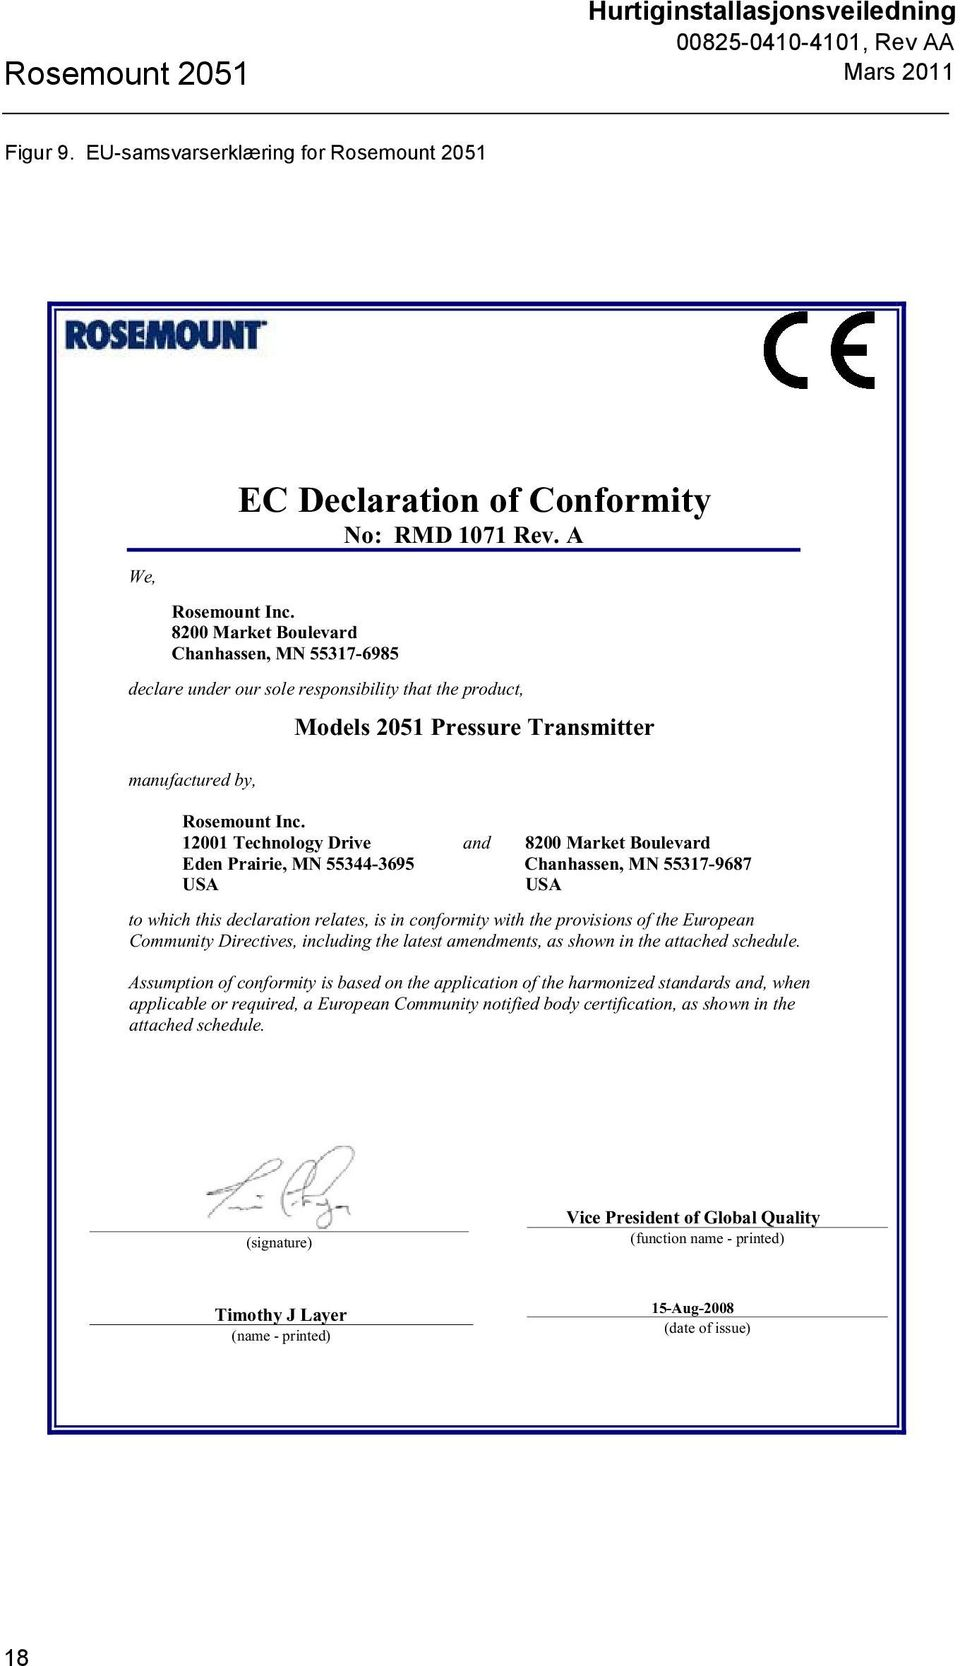 12001 Technology Drive and 8200 Market Boulevard Eden Prairie, MN 55344-3695 Chanhassen, MN 55317-9687 USA USA to which this declaration relates, is in conformity with the provisions of the European